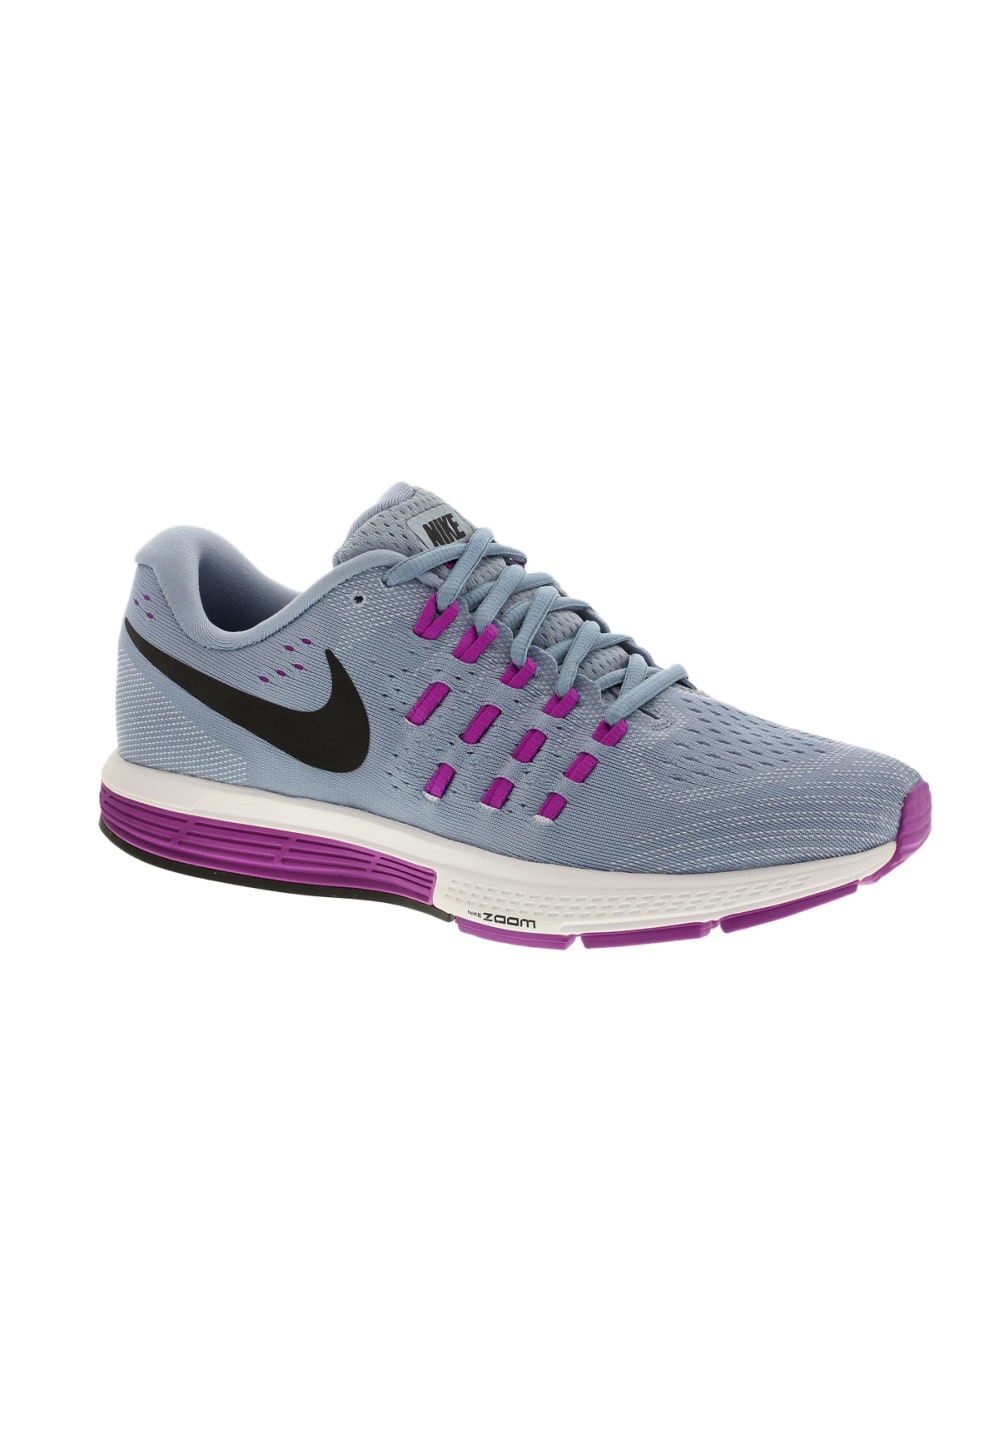 9bfebfeff71ebc Next. -60%. Nike. Air Zoom Vomero 11 - Running shoes for Women